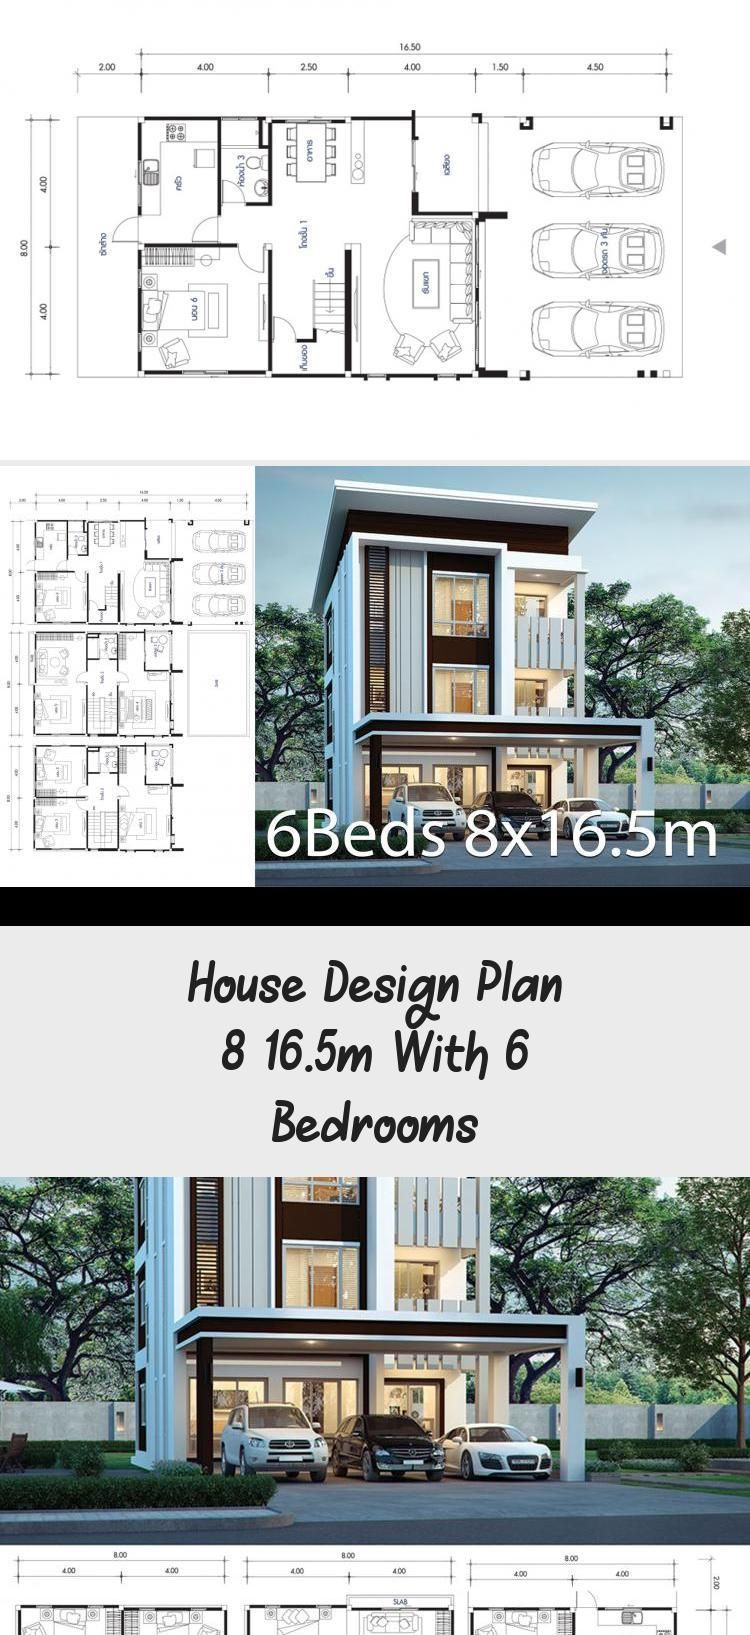 House Design Plan 8x16 5m With 6 Bedrooms Home Design With Plan Houseplanswit 8x165m Bedrooms Design In 2020 Home Design Plans Square House Plans House Design